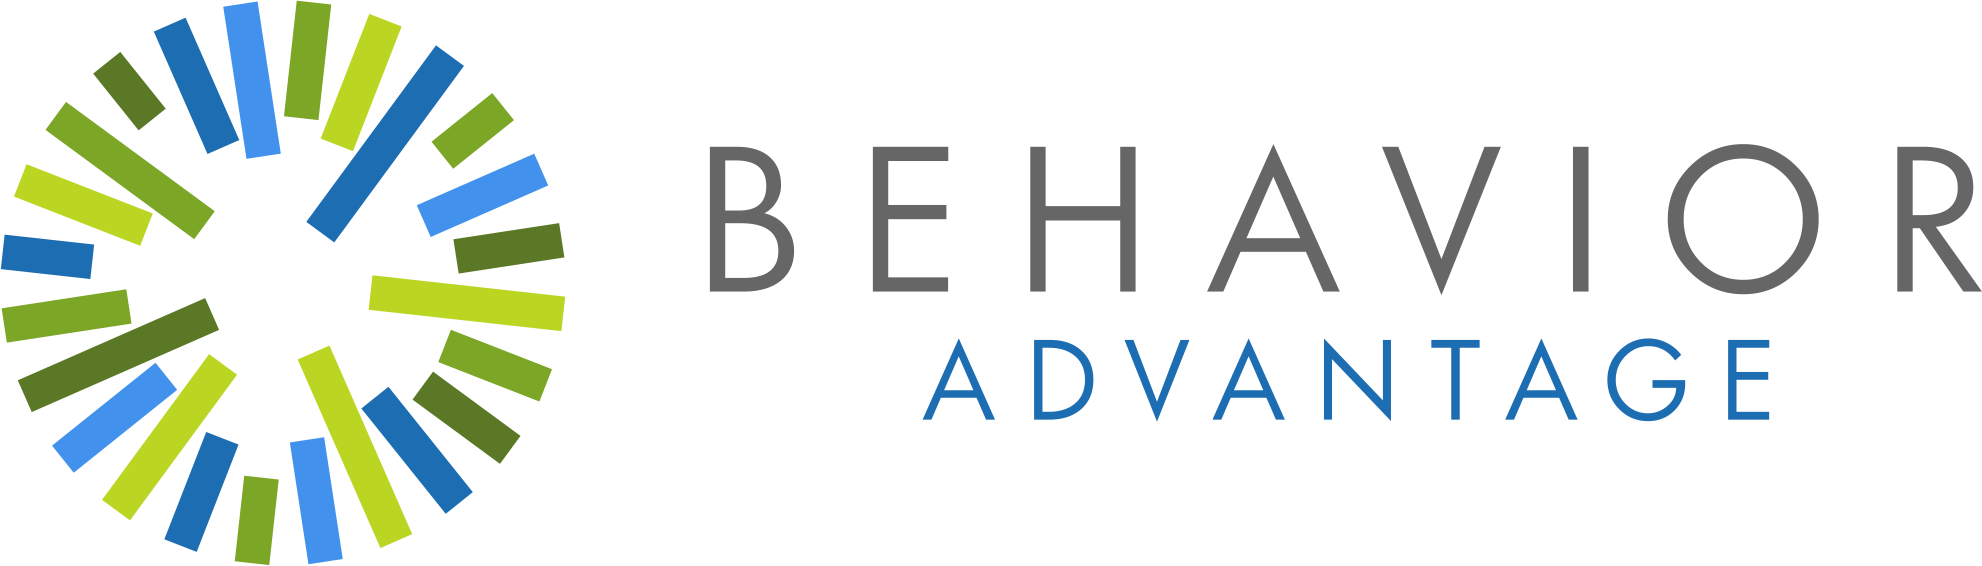 Behavior Advantage